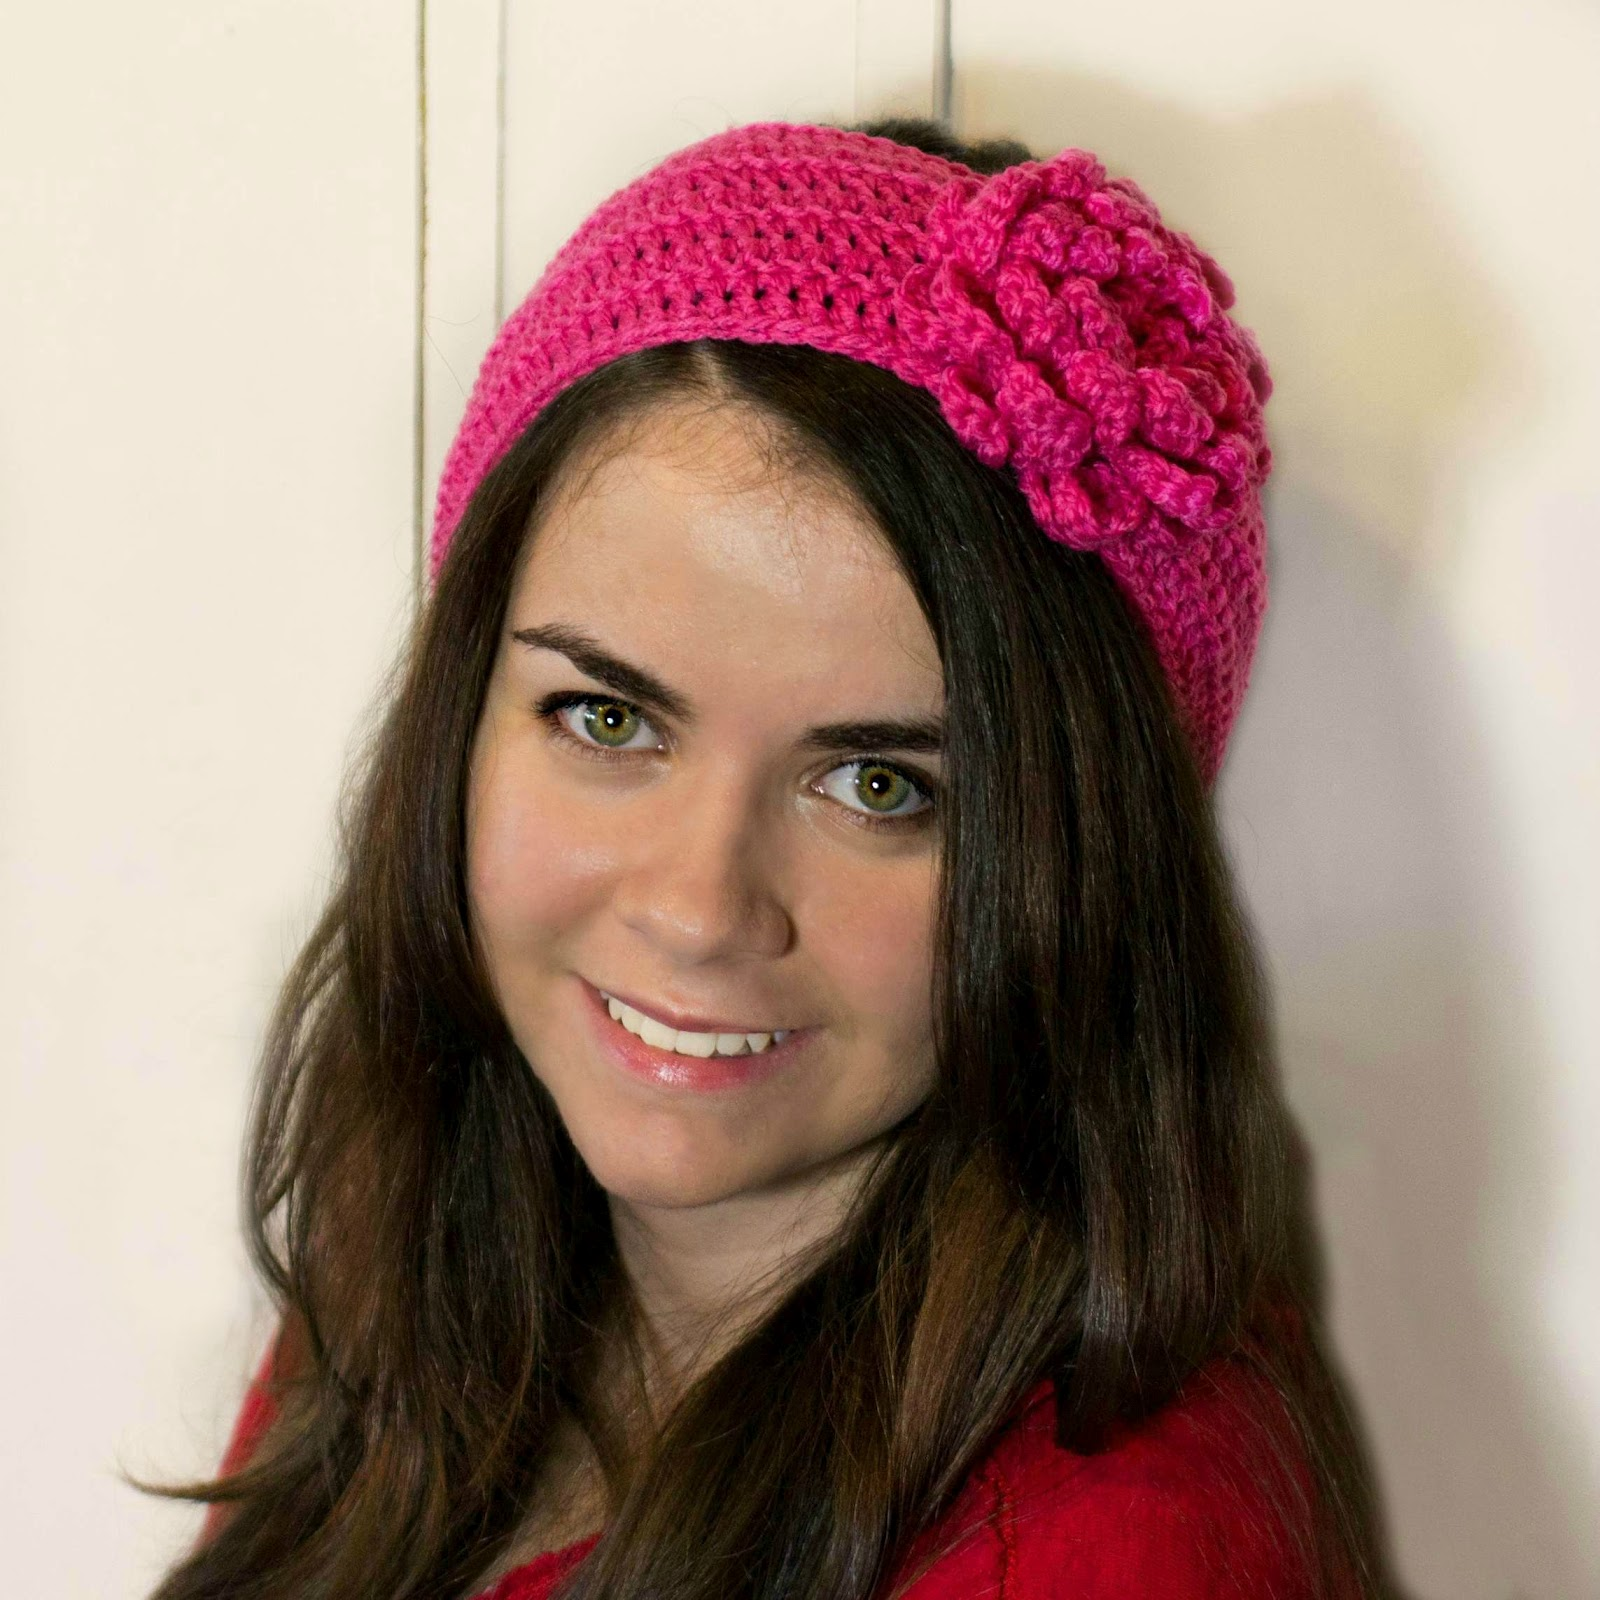 Gauge and Sizing. 4 sts x 2 rows = 1″ in double crochet. Following the written instructions without any modifications to size, your finished headband will measure approximately 20″ in circumference and will stretch to fit approximately 22″ circumference.